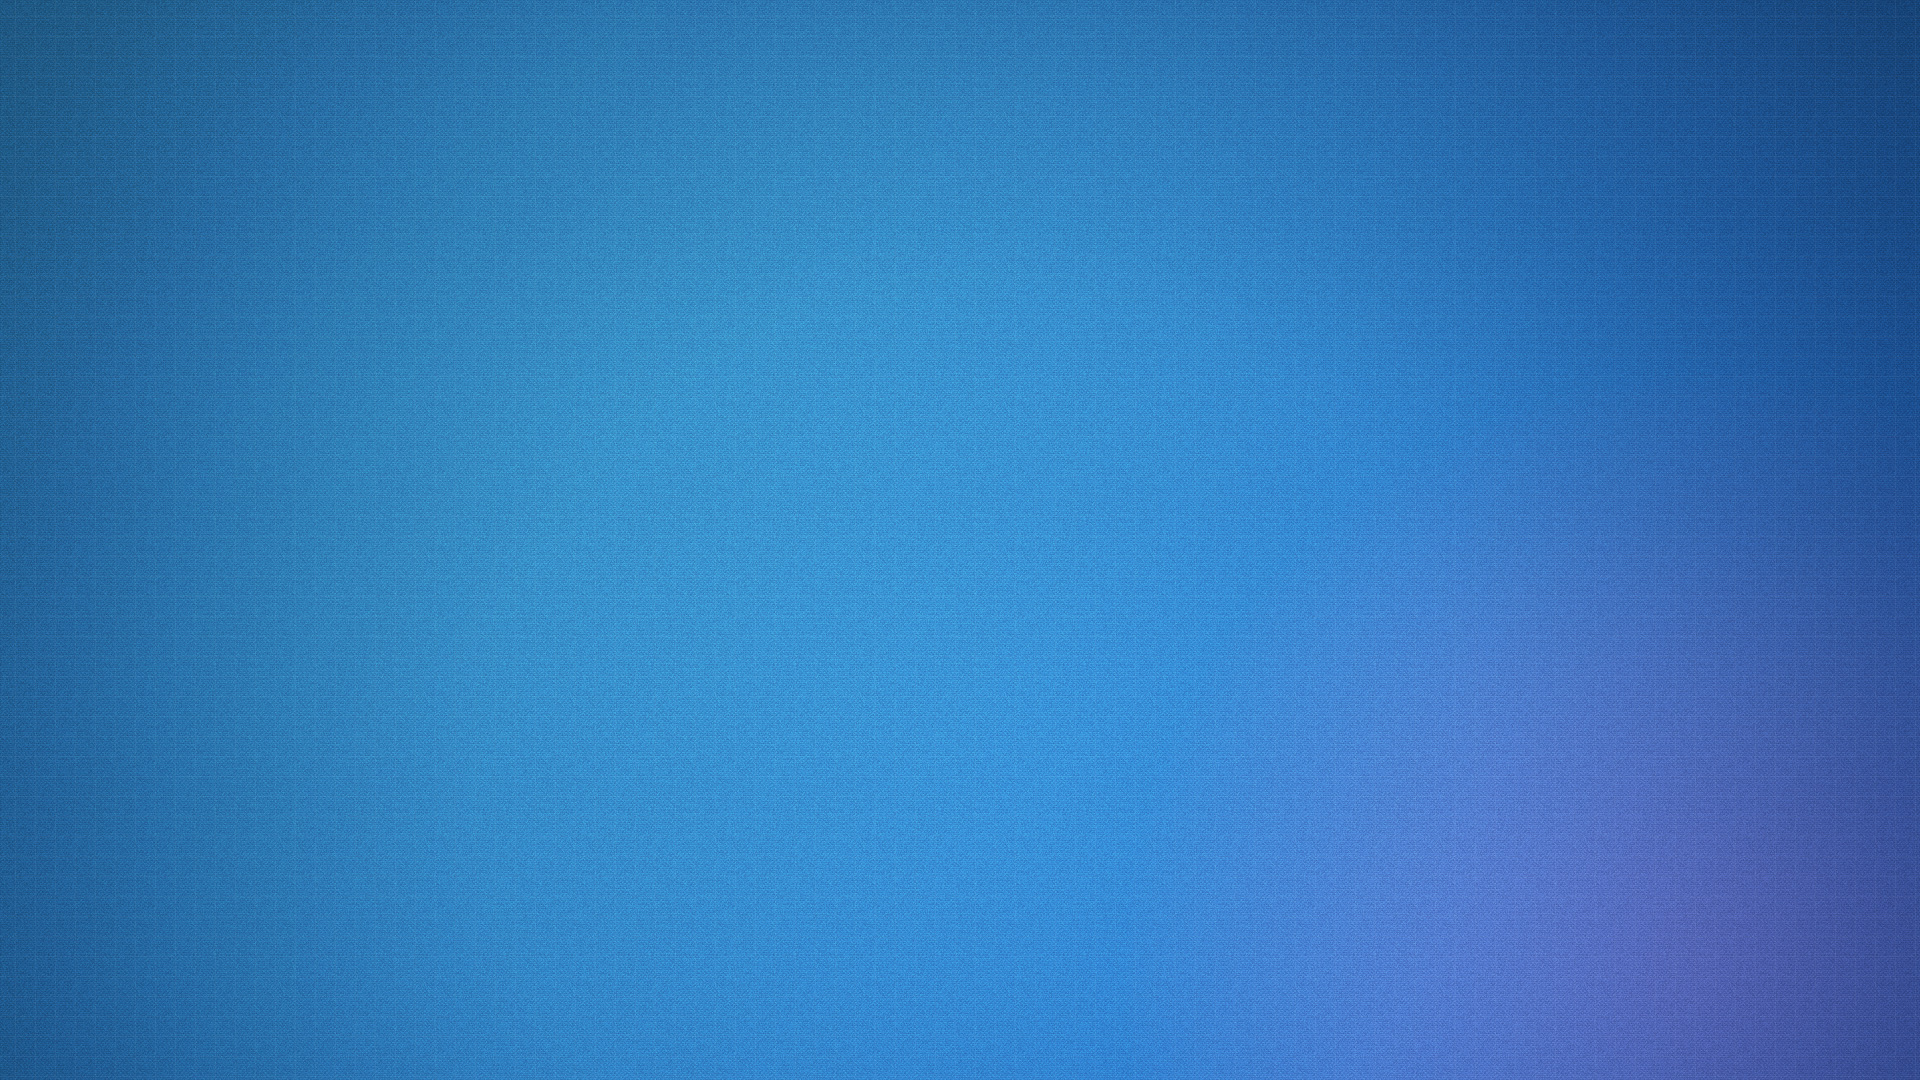 Free Hd Light Blue Wallpaper Pixelstalknet